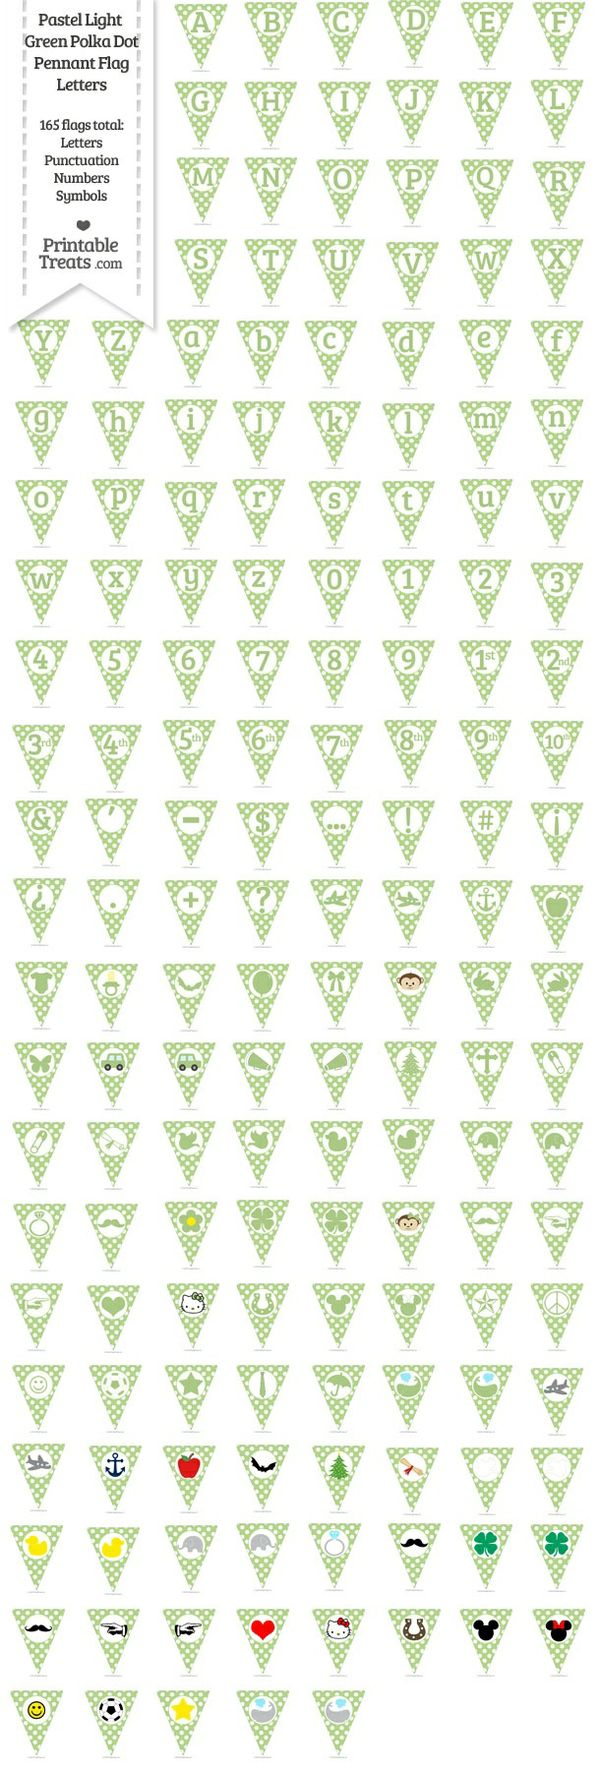 165 Pastel Light Green Polka Dot Pennant Flag Letters Password